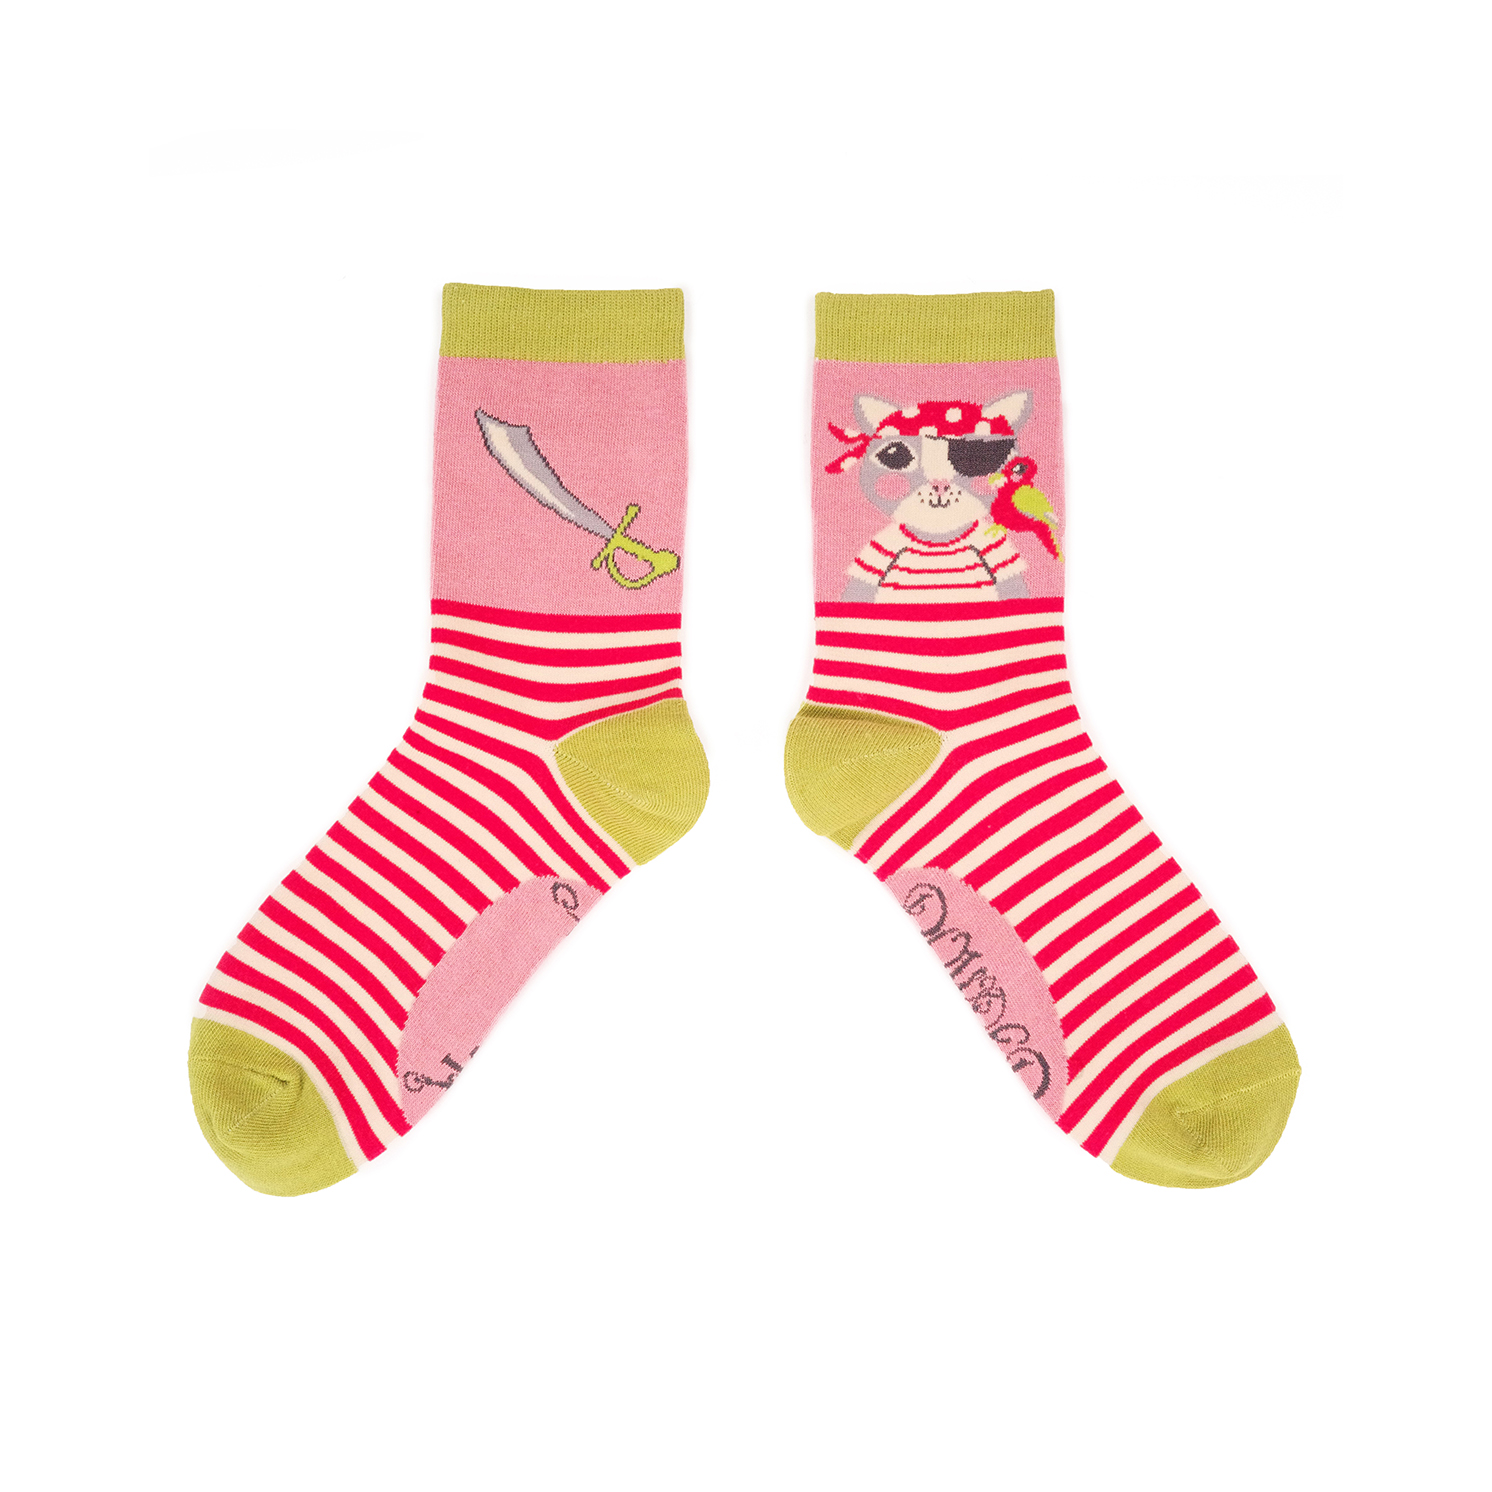 Powder – Candy Pirate Pussy Ankle Socks with Presentation Gift Bag